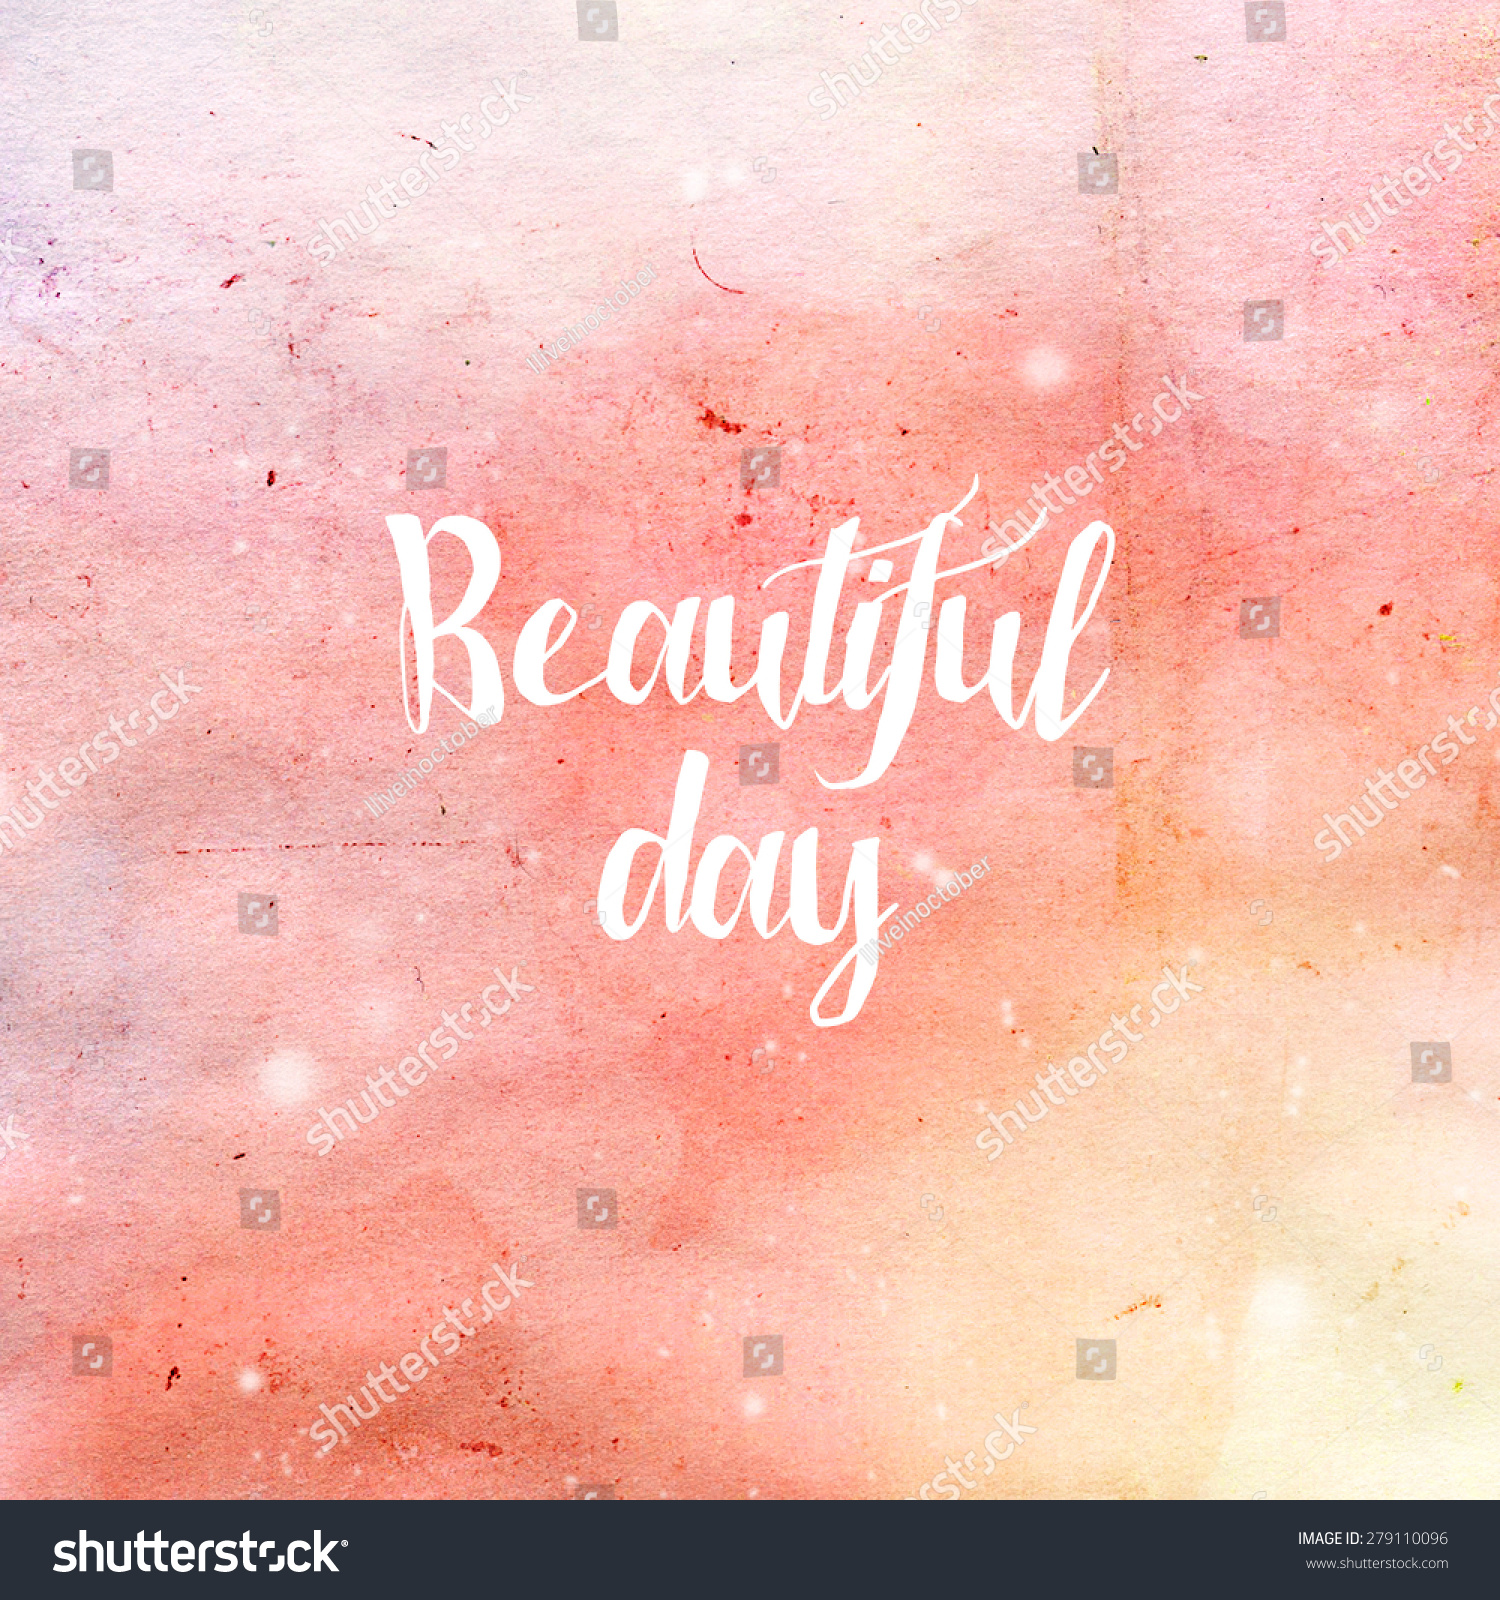 Beautiful Day Quotes Inspirational: Royalty-free Beautiful Day Typography Poster In Pink